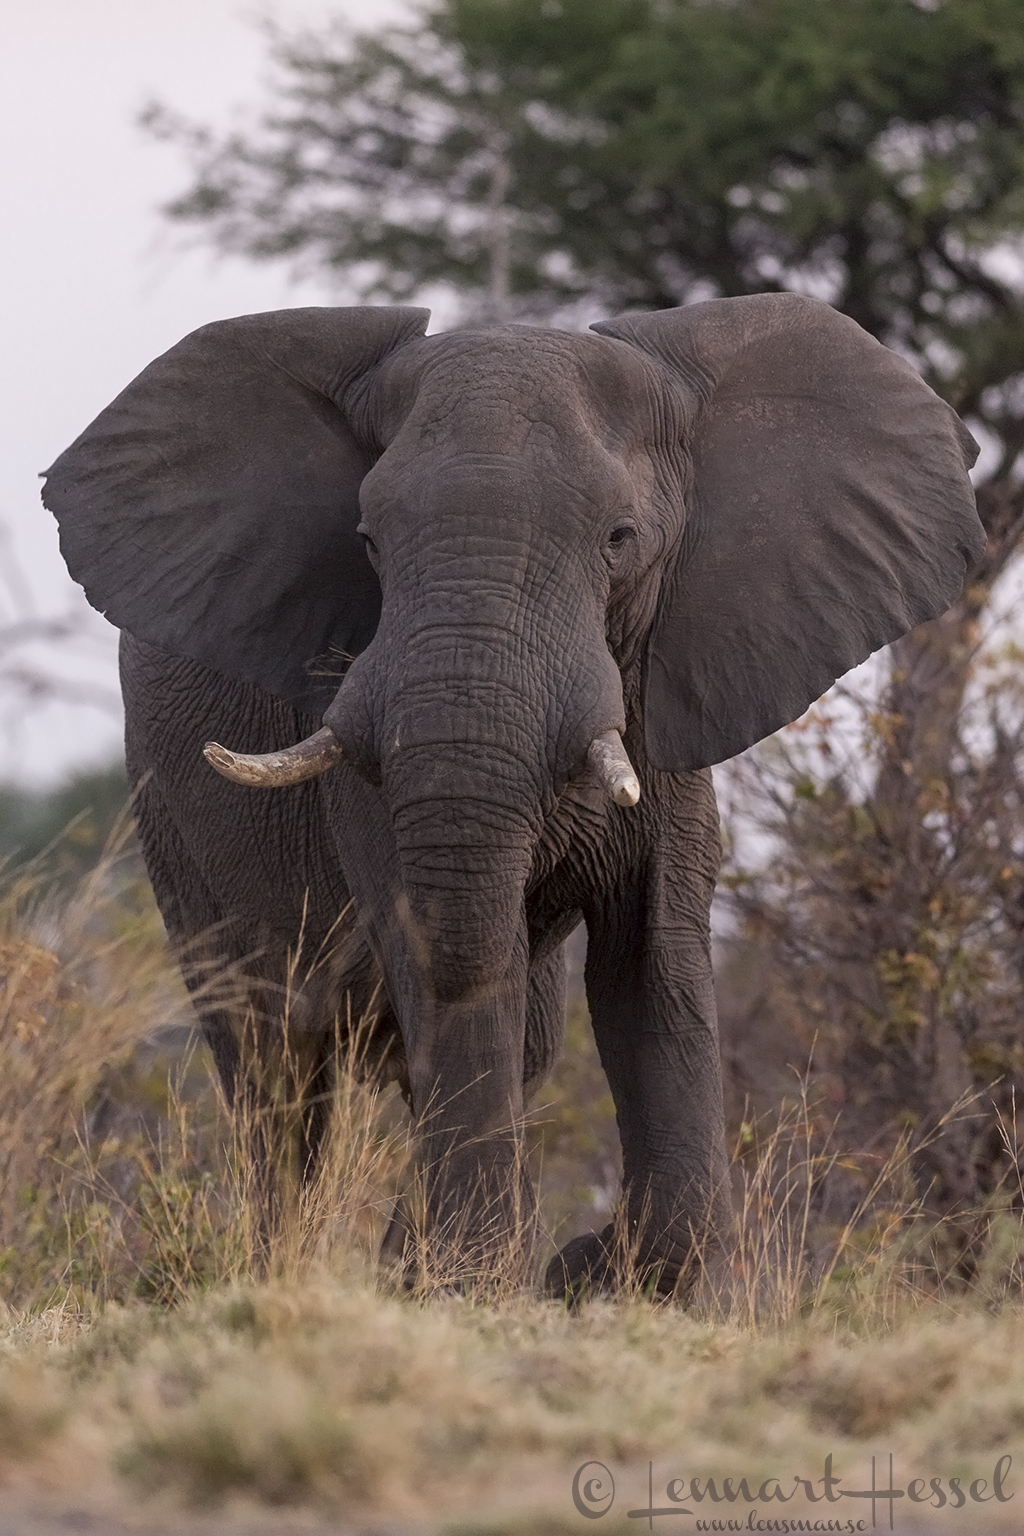 Elephant Bull in Khwai Community Area, Botswana